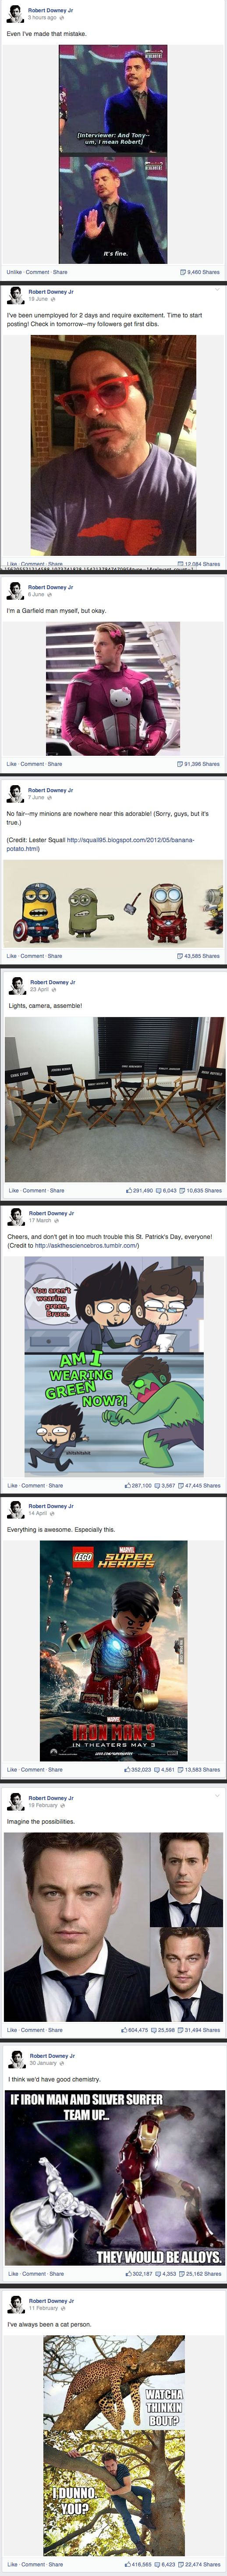 RDJ is awesome. The fact he googles himself and posts these/tumblr/who knows....I love it.